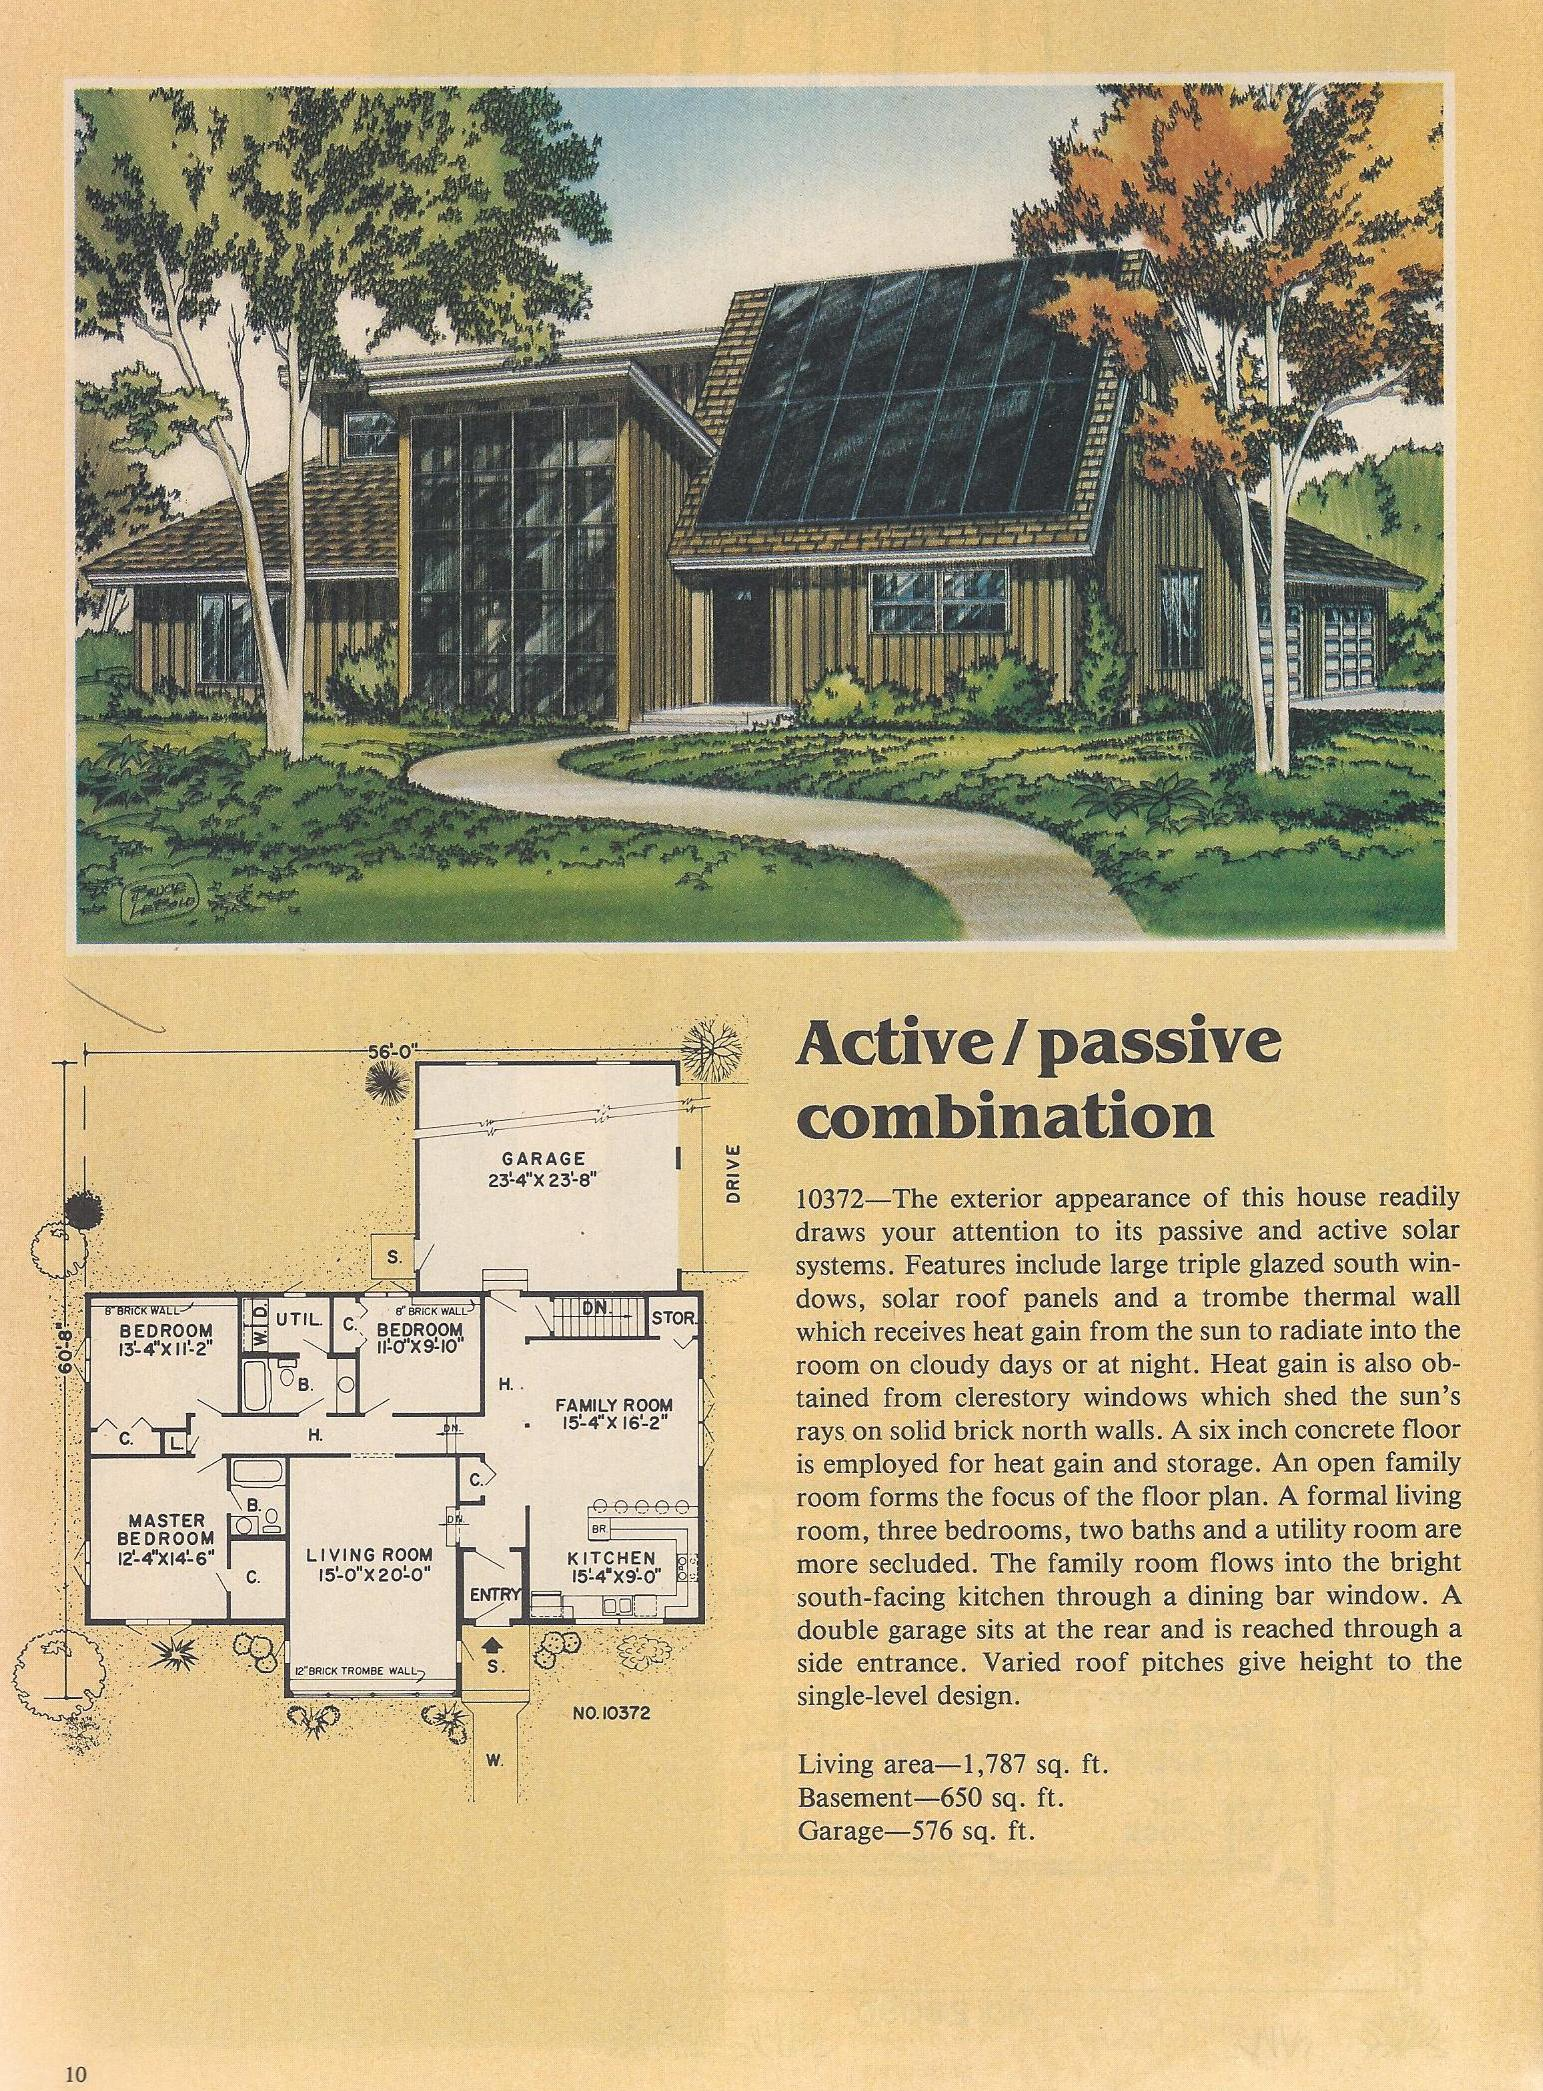 Vintage house plans solar house plans posted on june 25 for Active solar house plans